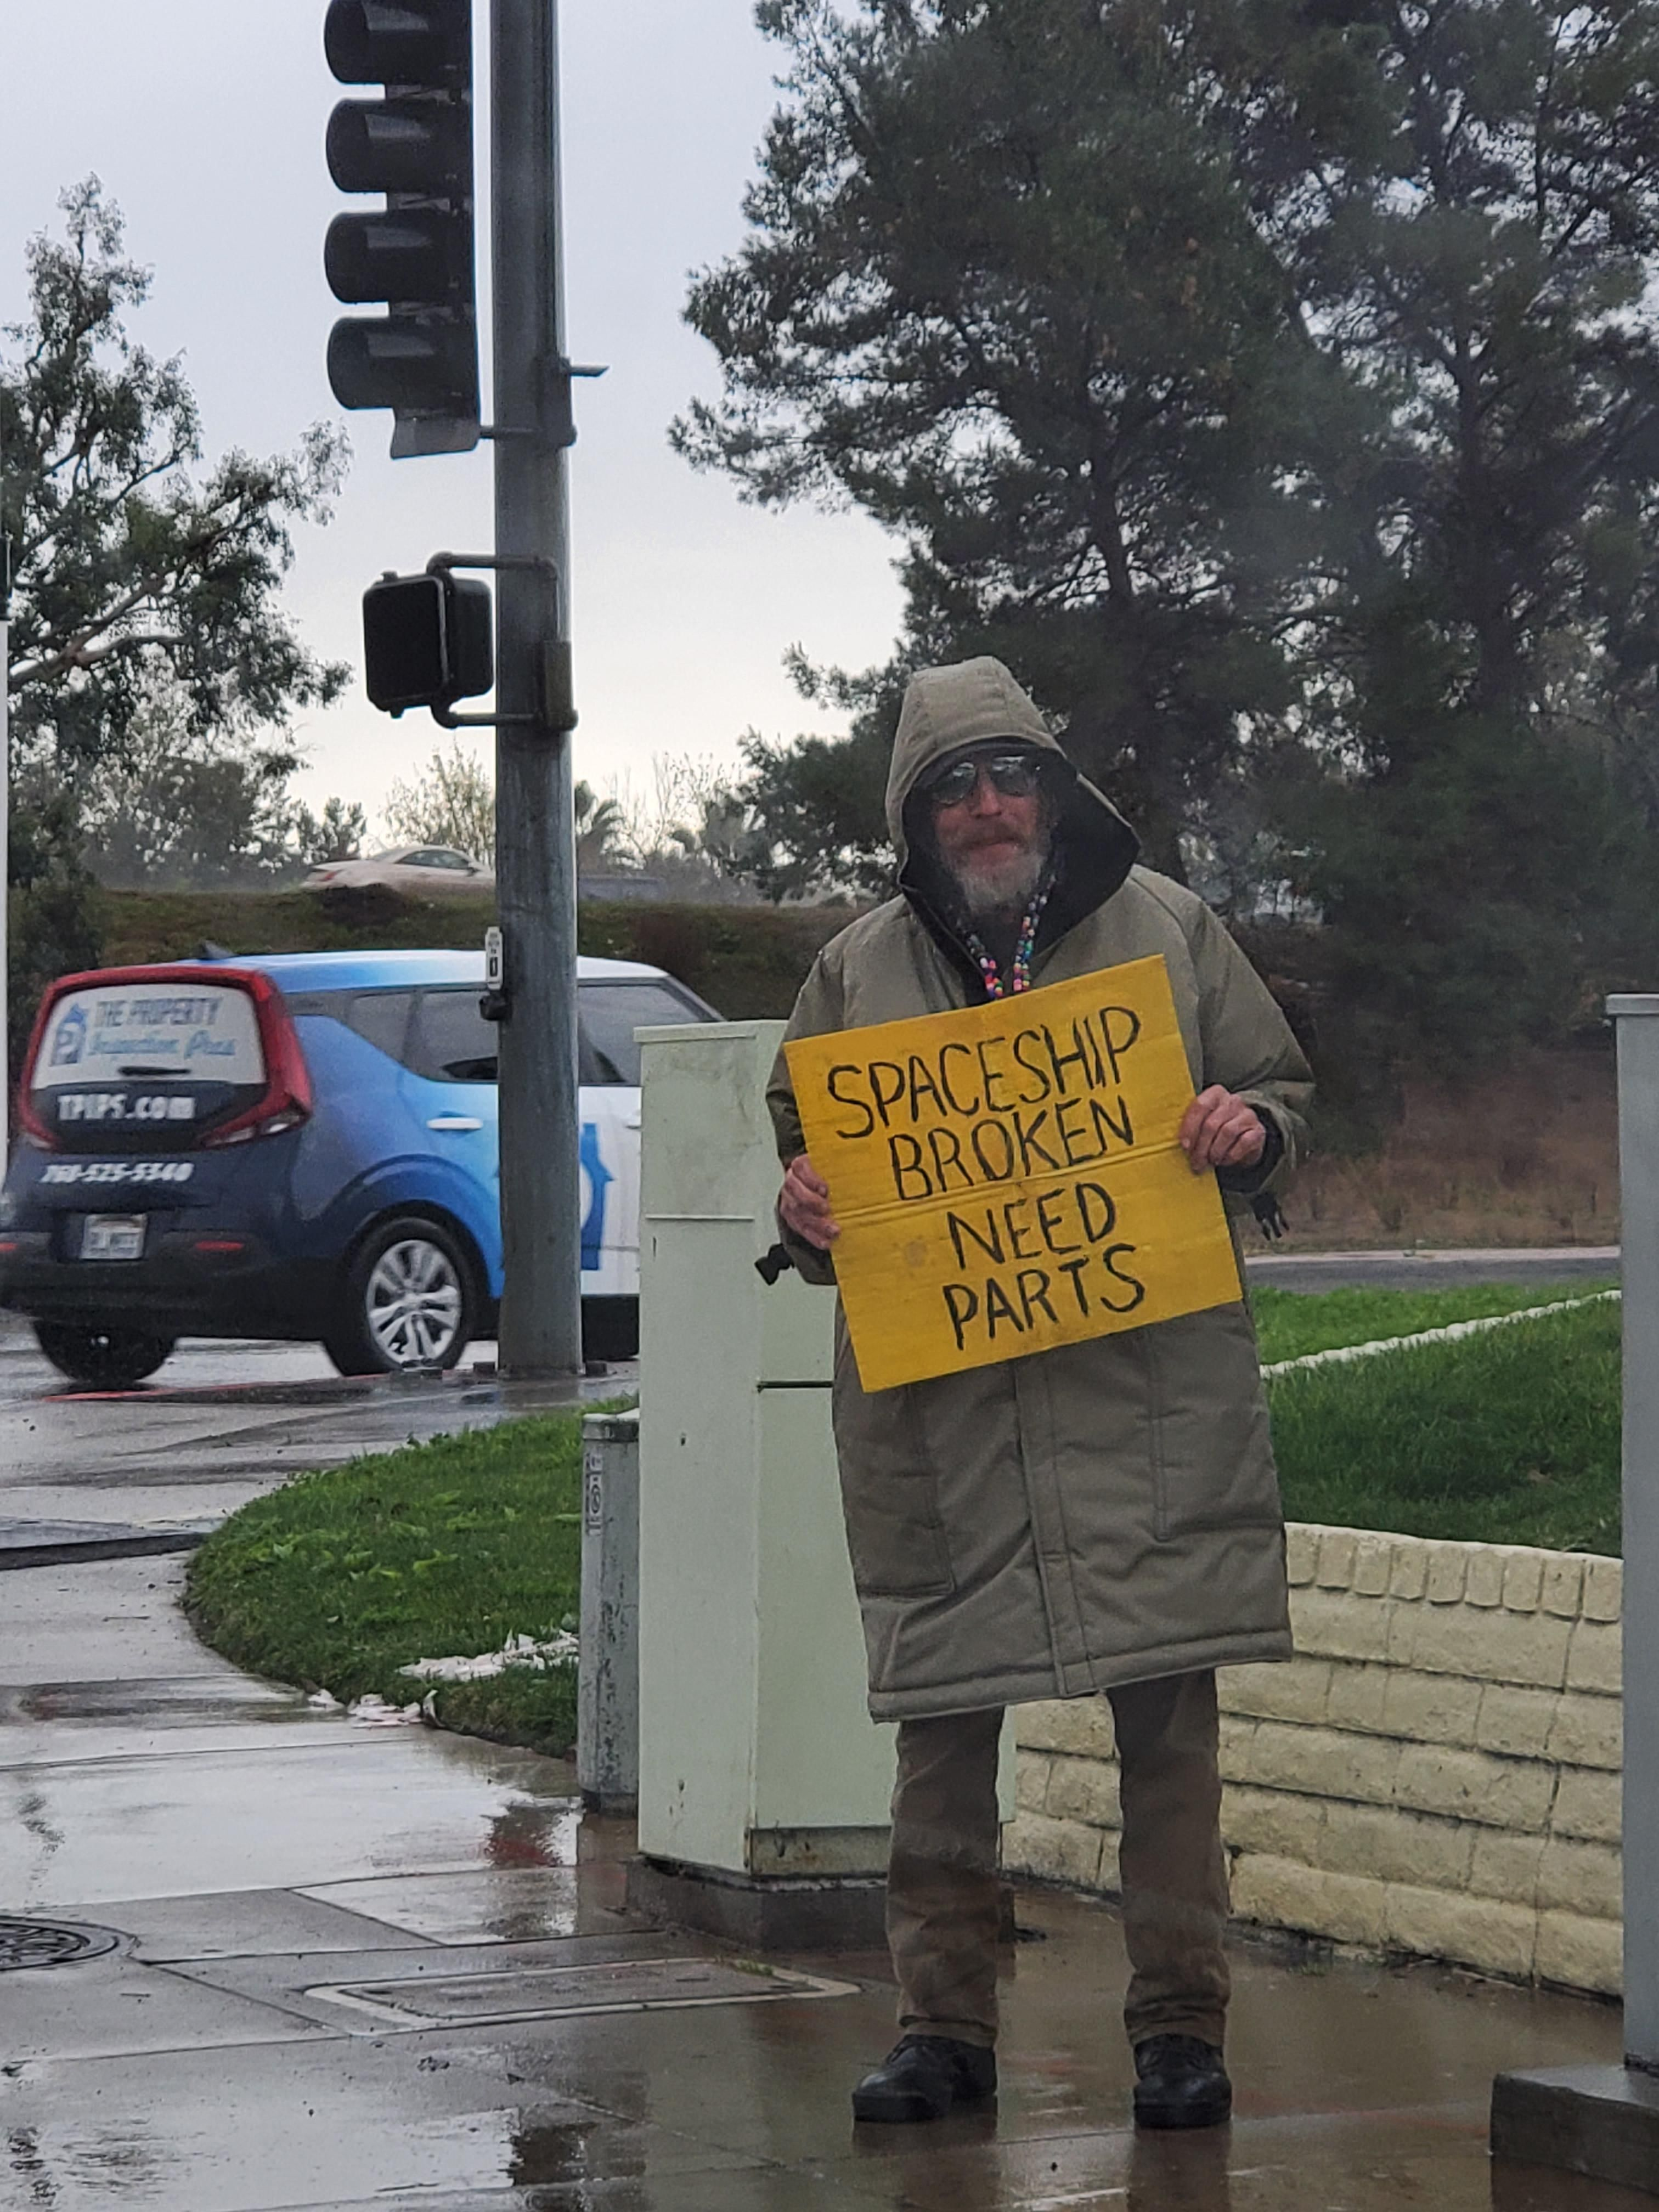 Homeless man in SD, California